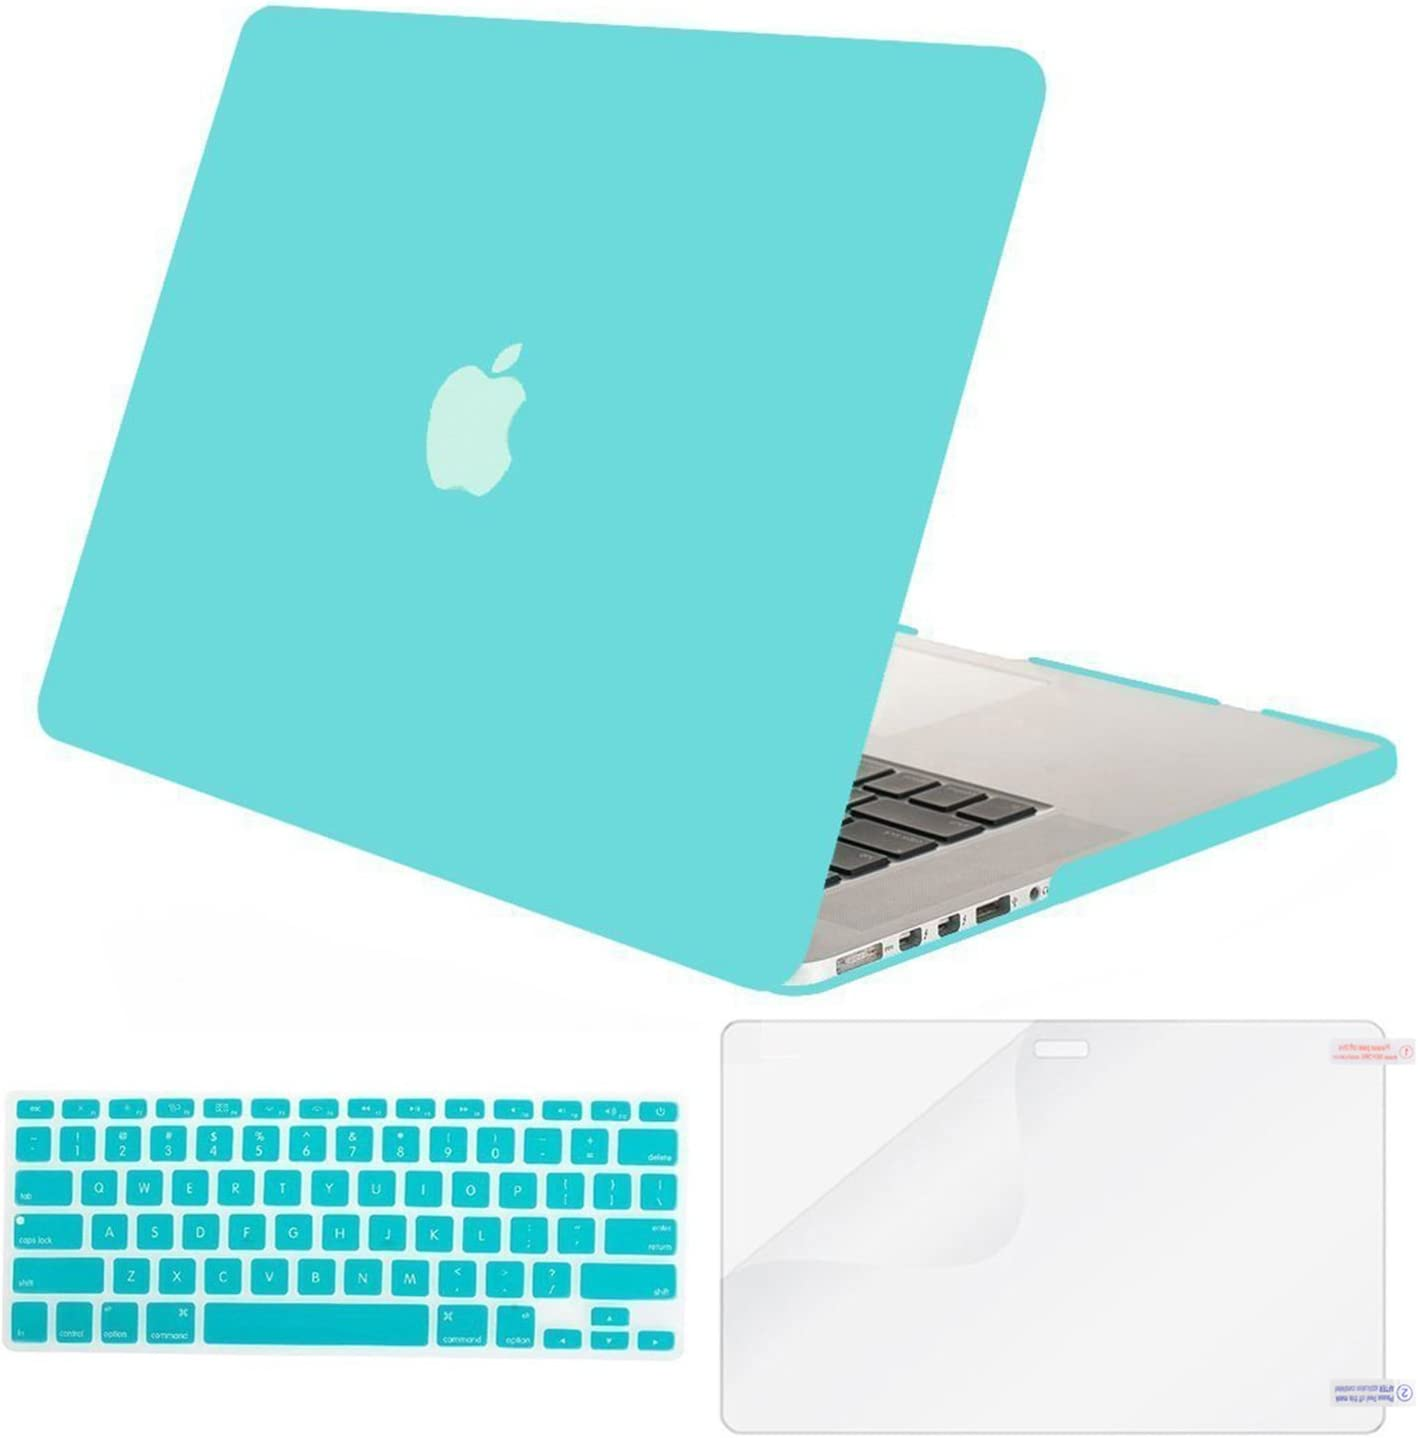 MOSISO Case Only Compatible with Older Version MacBook Pro Retina 13 inch (Models: A1502 & A1425) (Release 2015 - end 2012), Plastic Hard Shell Case & Keyboard Cover & Screen Protector, Turquoise